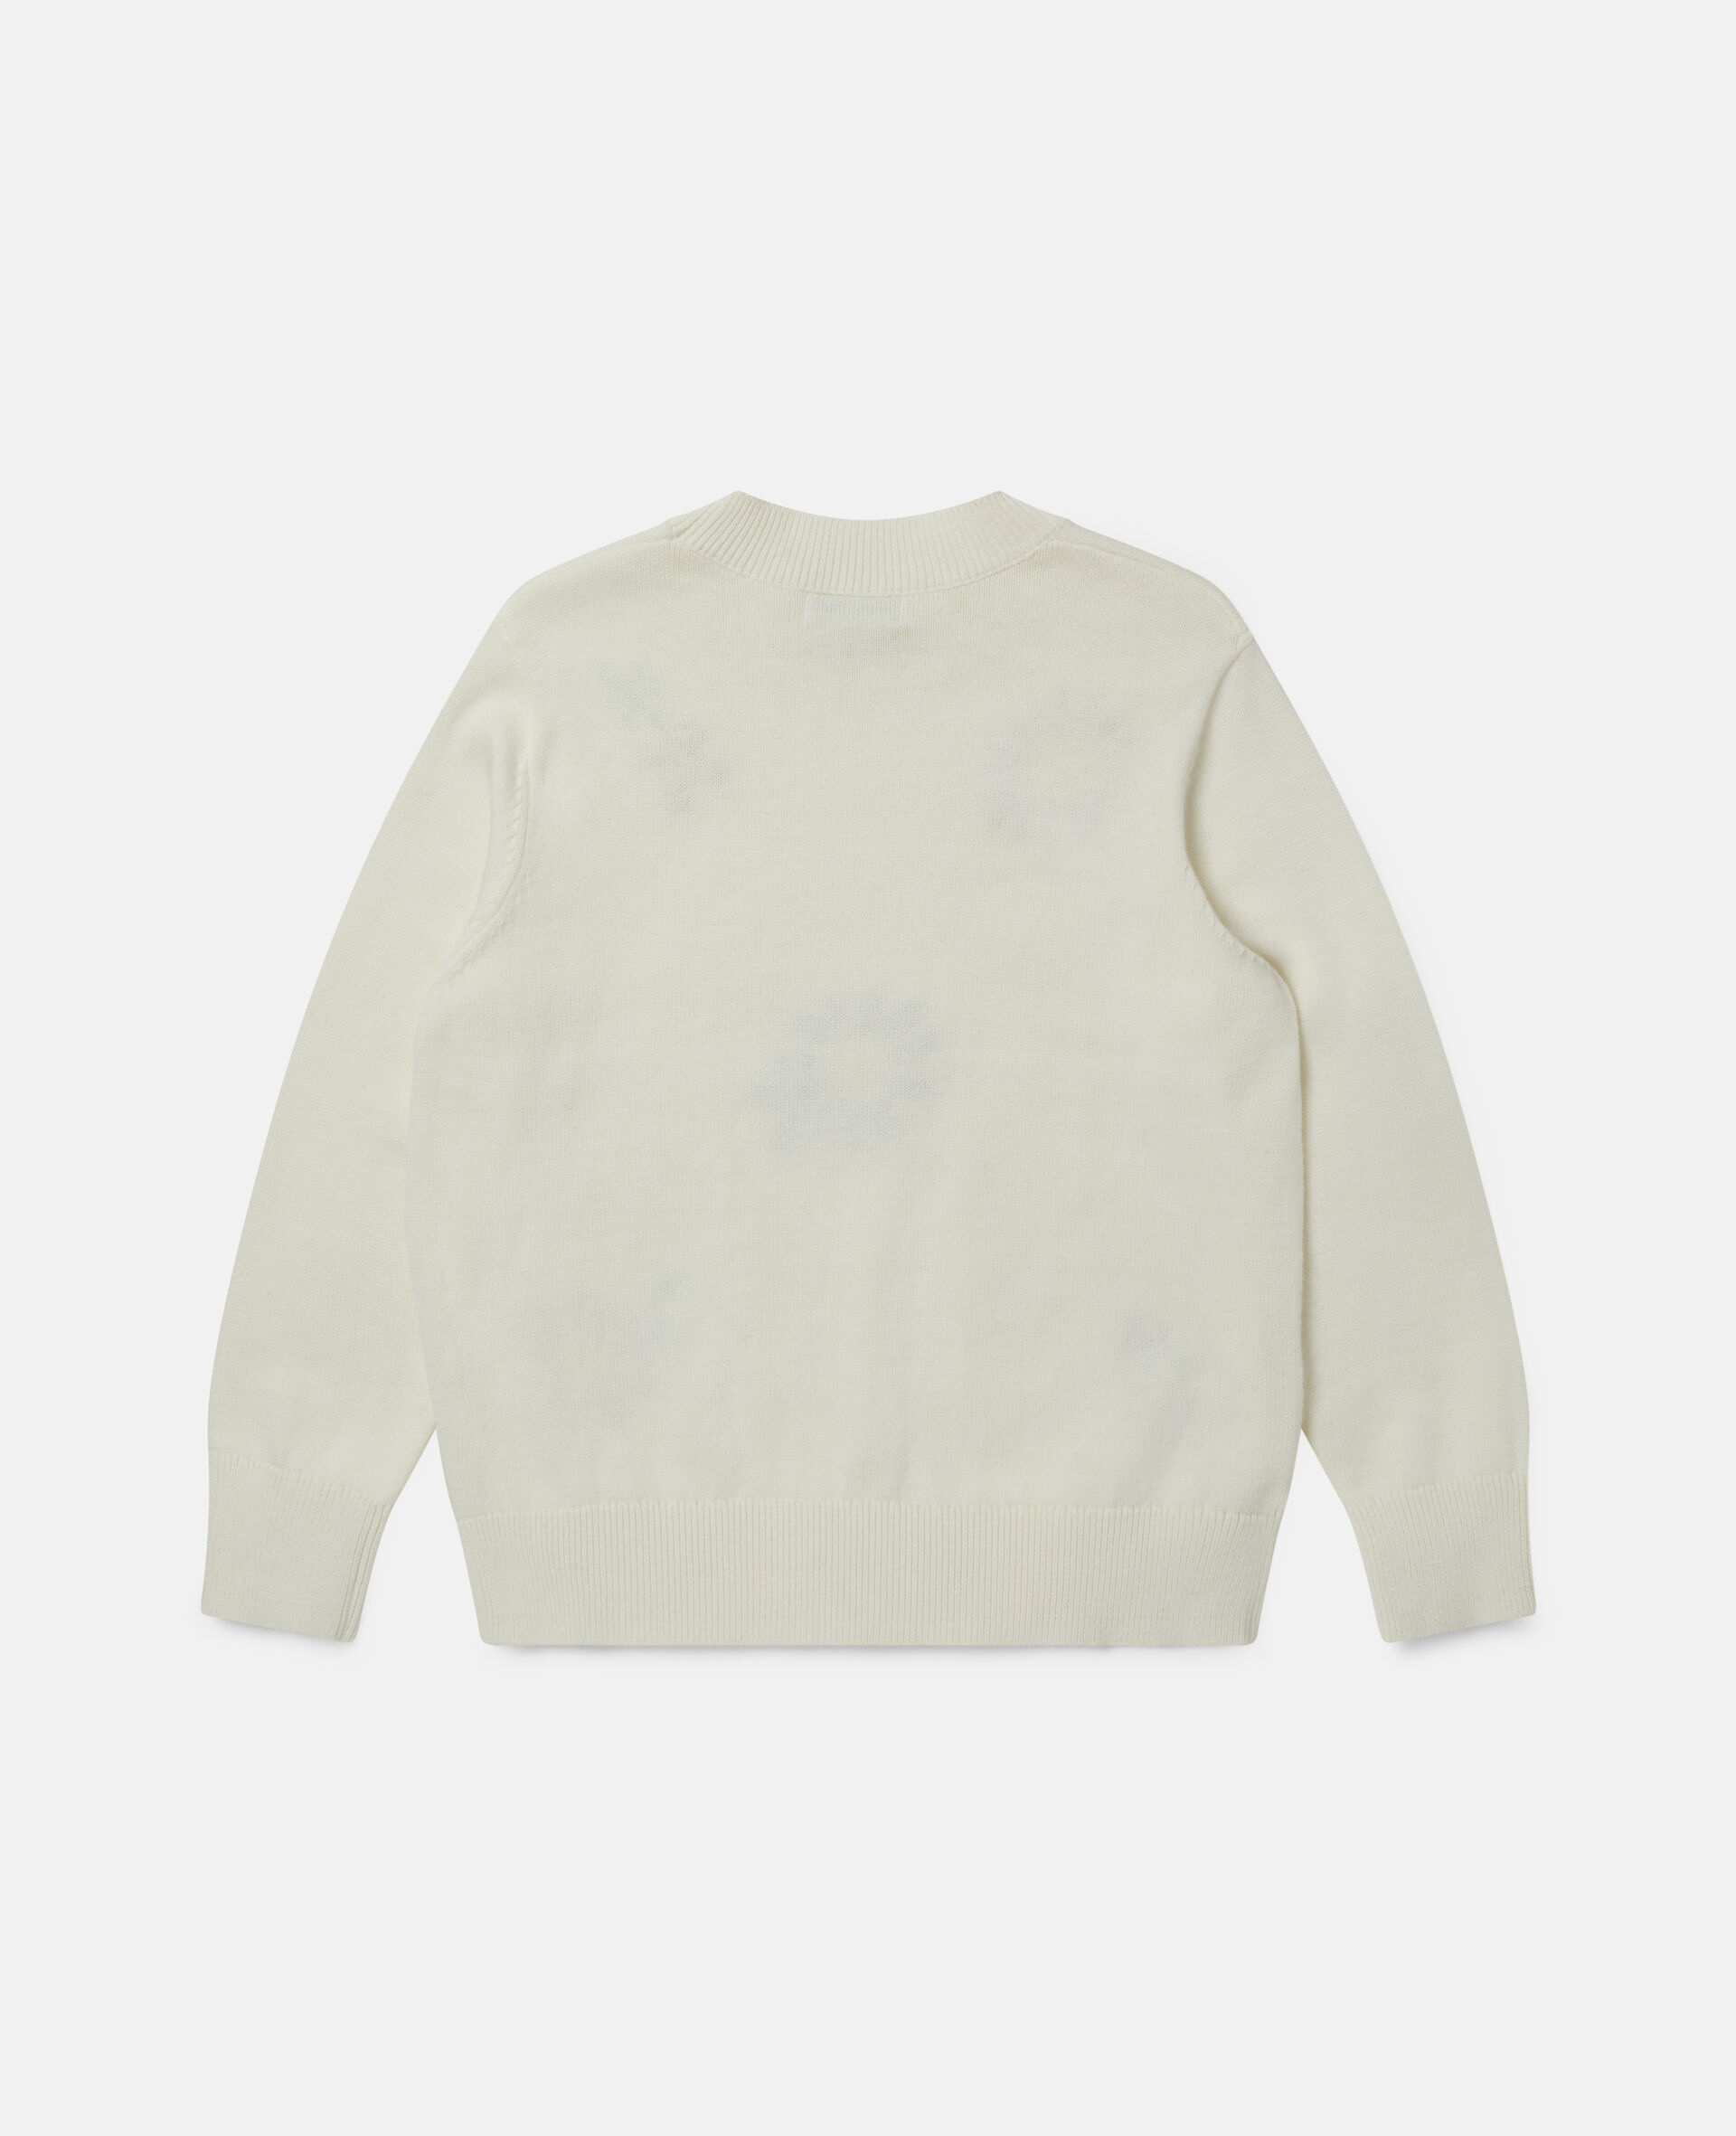 Embroidered Flowers Oversized Jumper-White-large image number 3